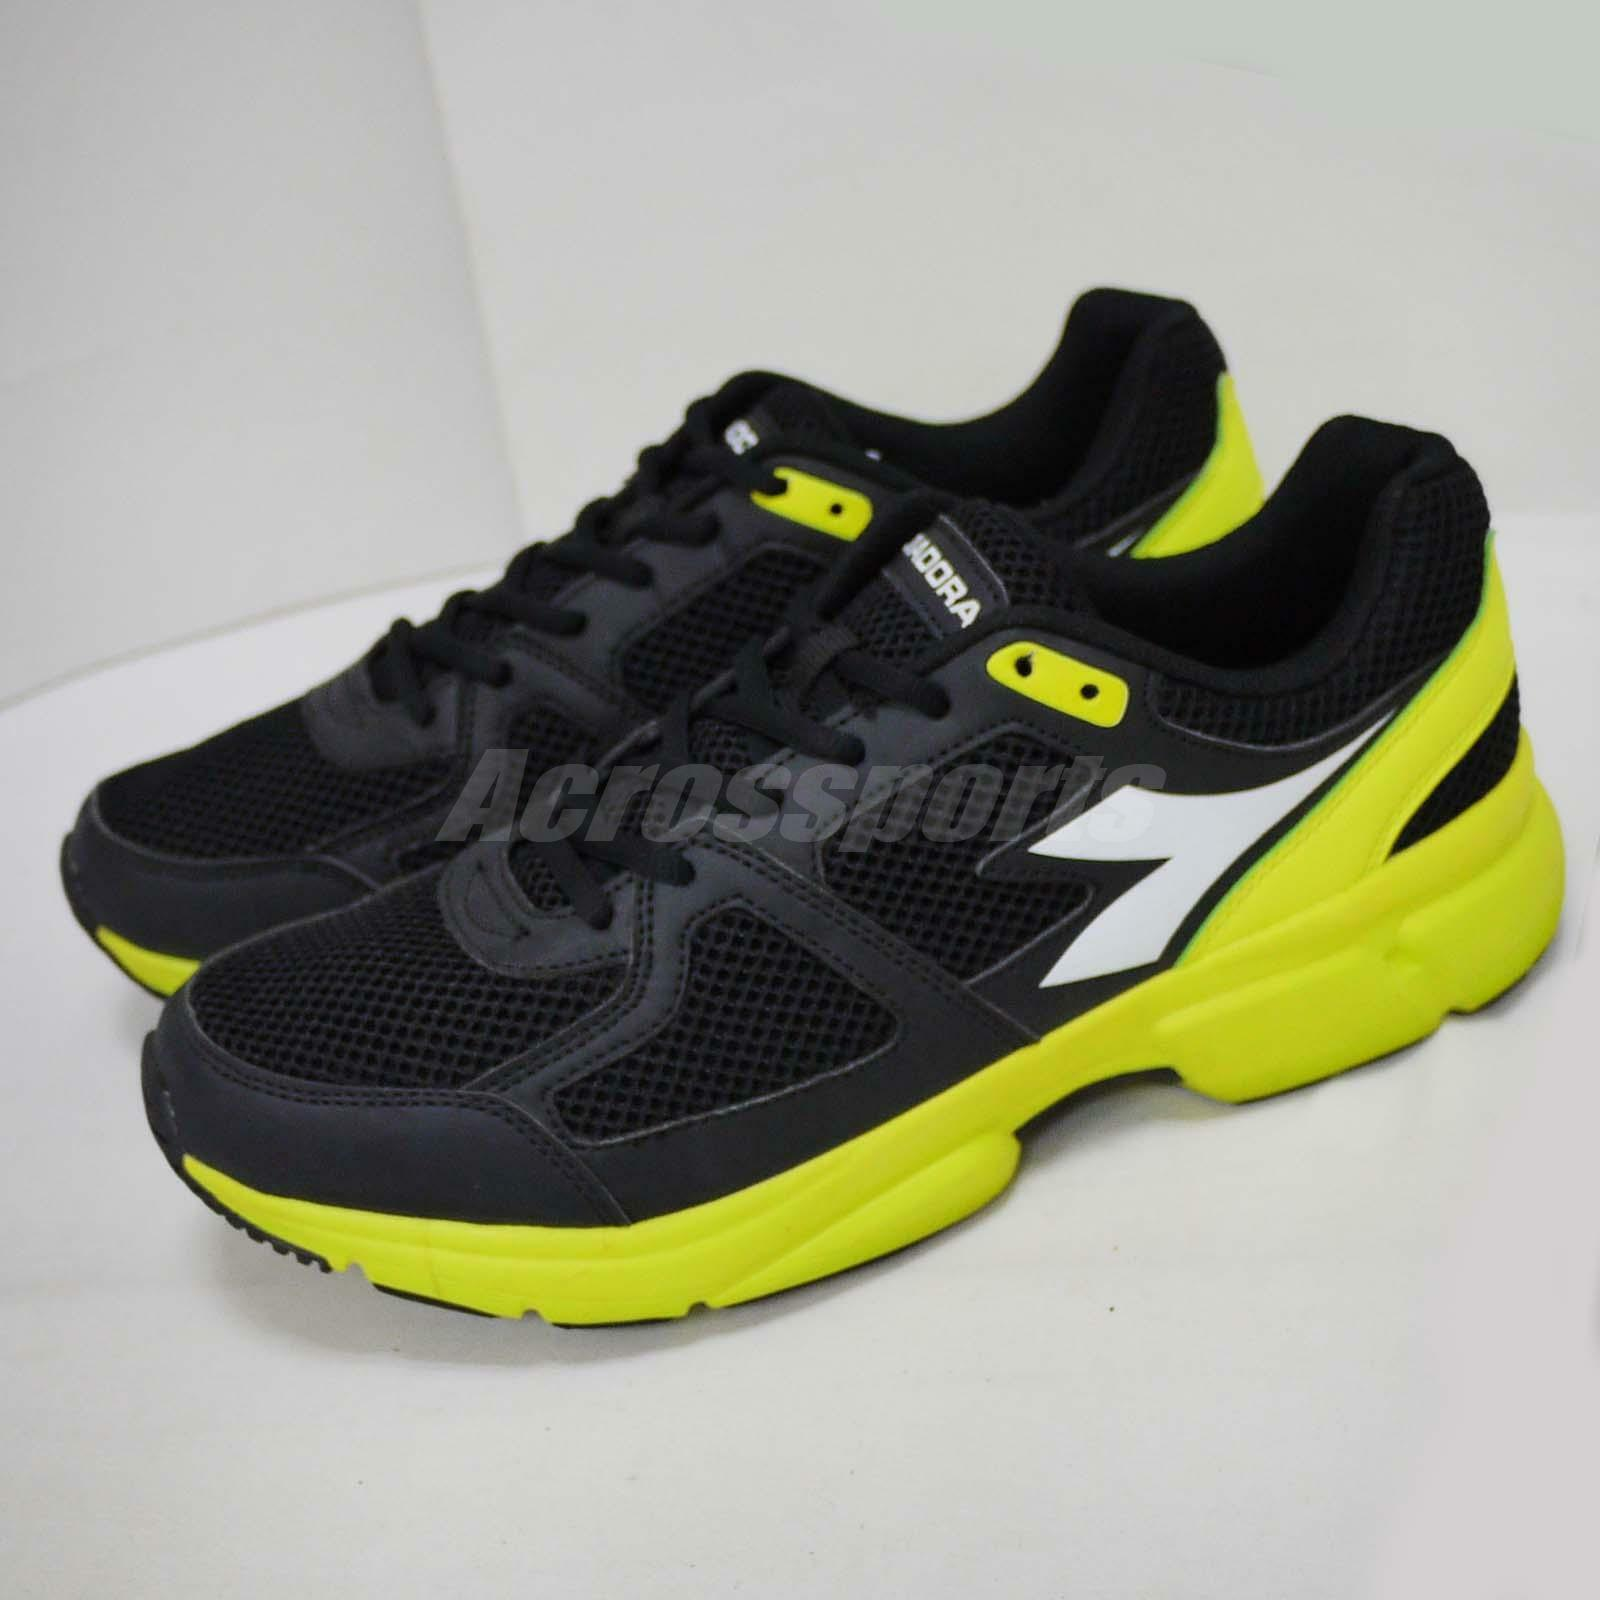 Diadora Shape 8 Right Foot With Tiny Defect Yellow Men shoes Sneaker 172074-C0871